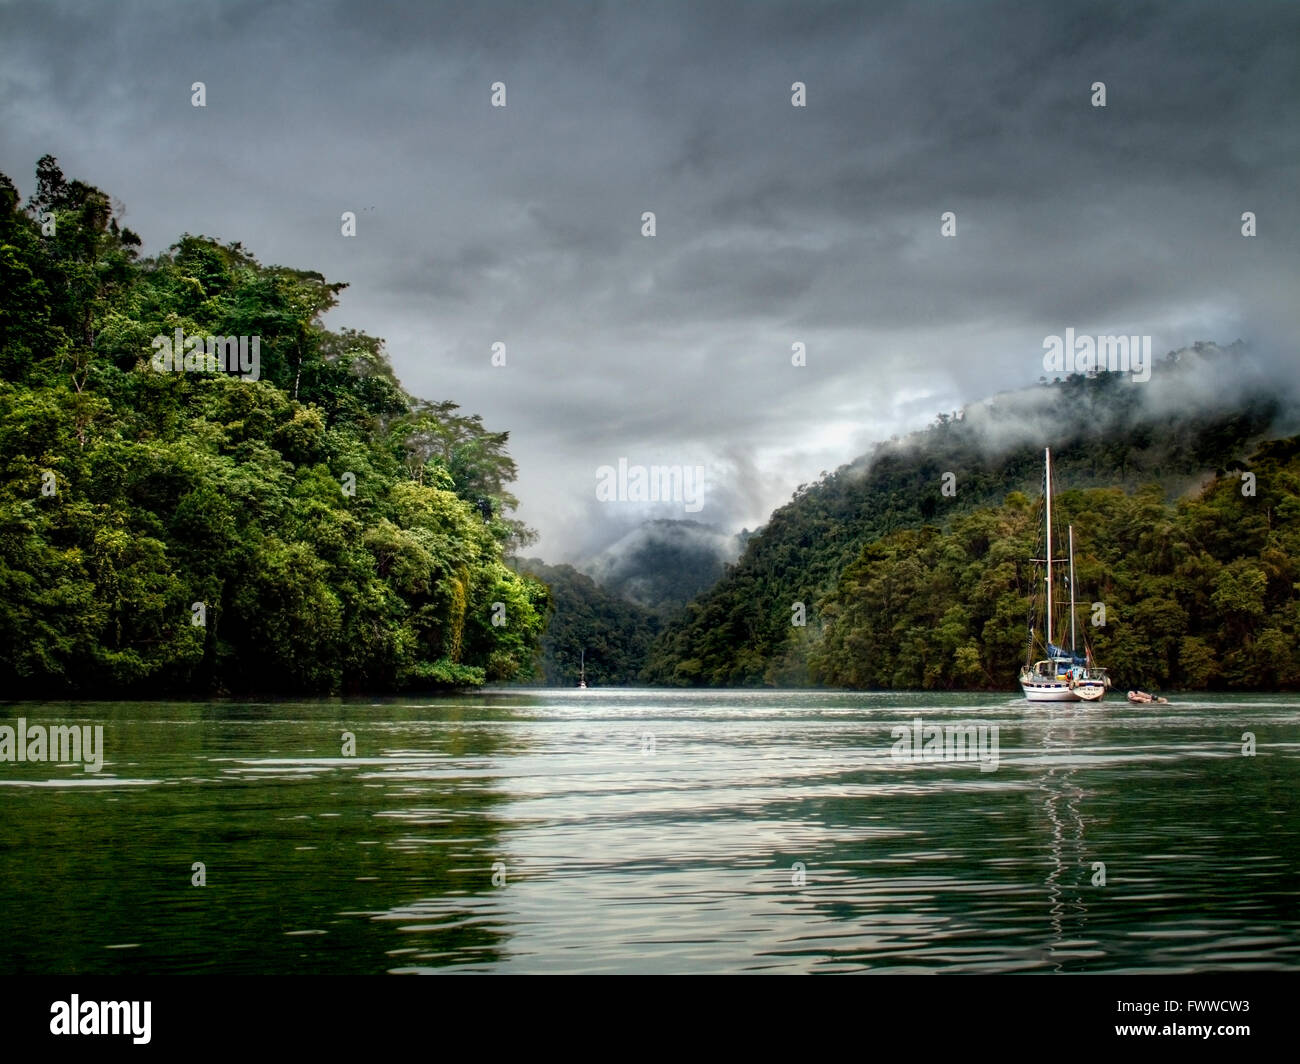 Guatemala, Izabal, near the town of Livingston, Rio Dulce River. Gorge and jungle view - Stock Image